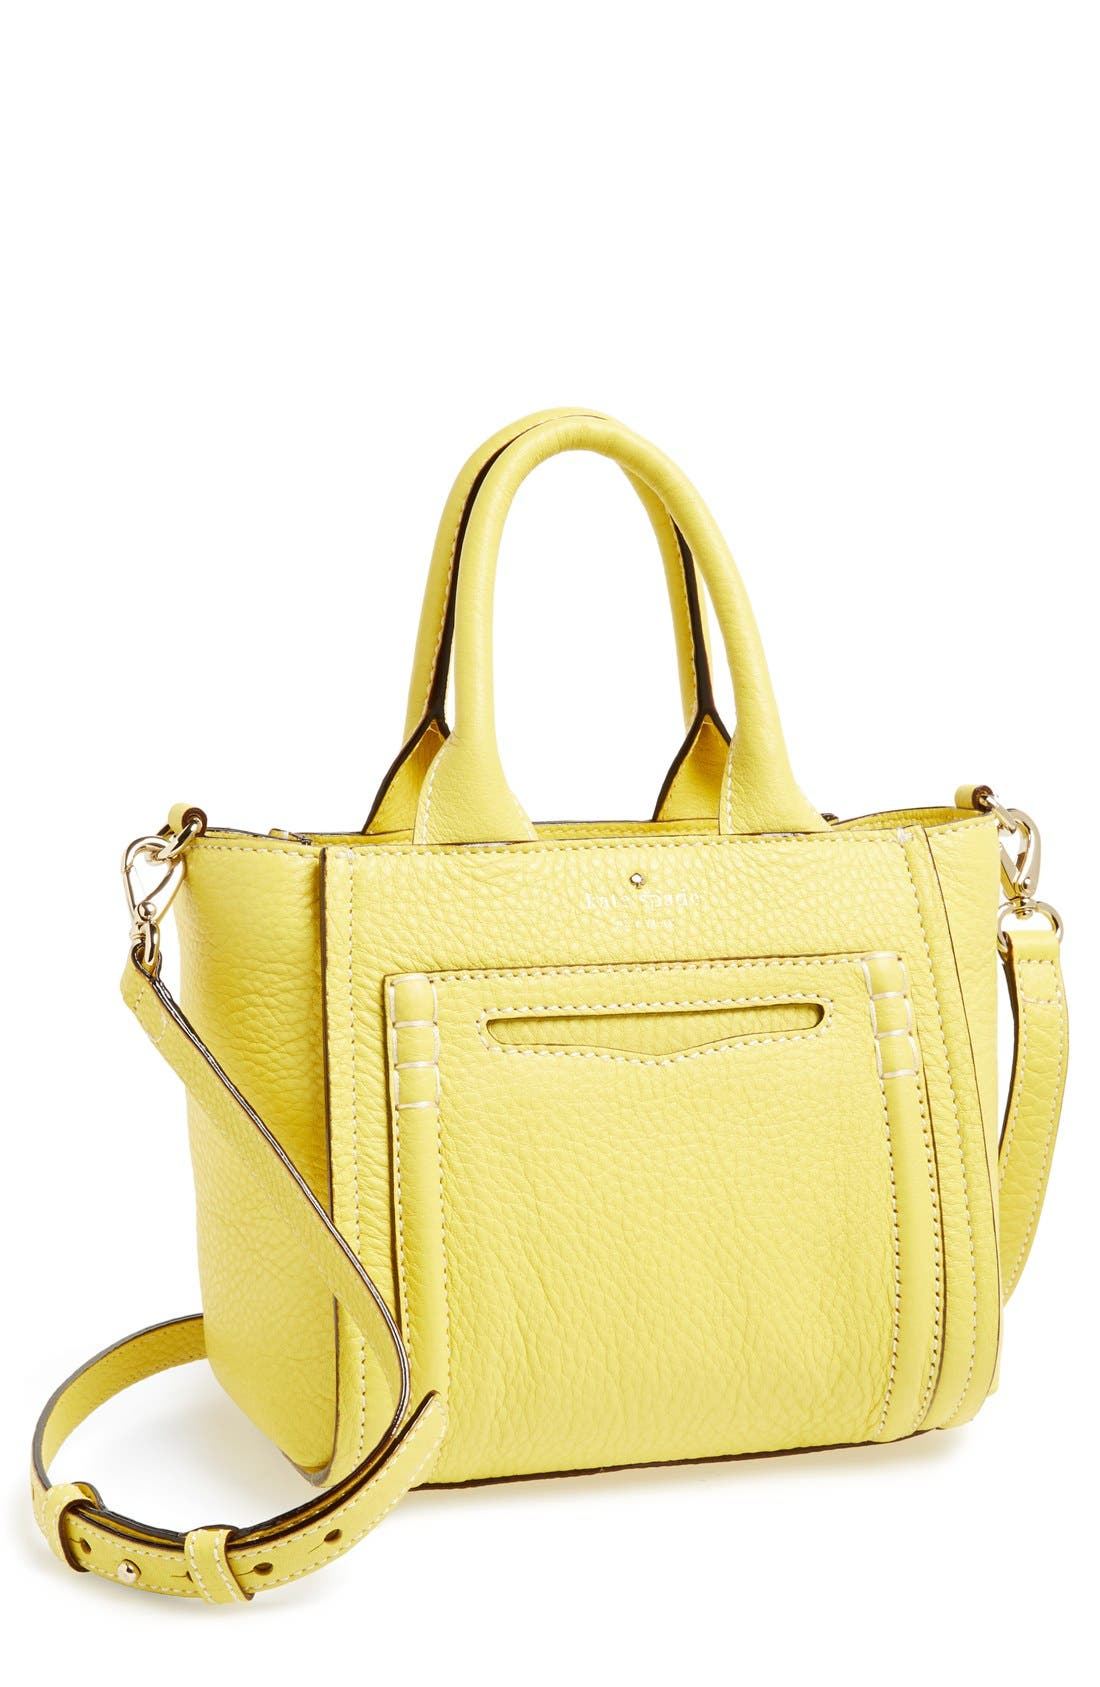 Alternate Image 1 Selected - kate spade new york 'small claremont drive marcella' leather crossbody satchel